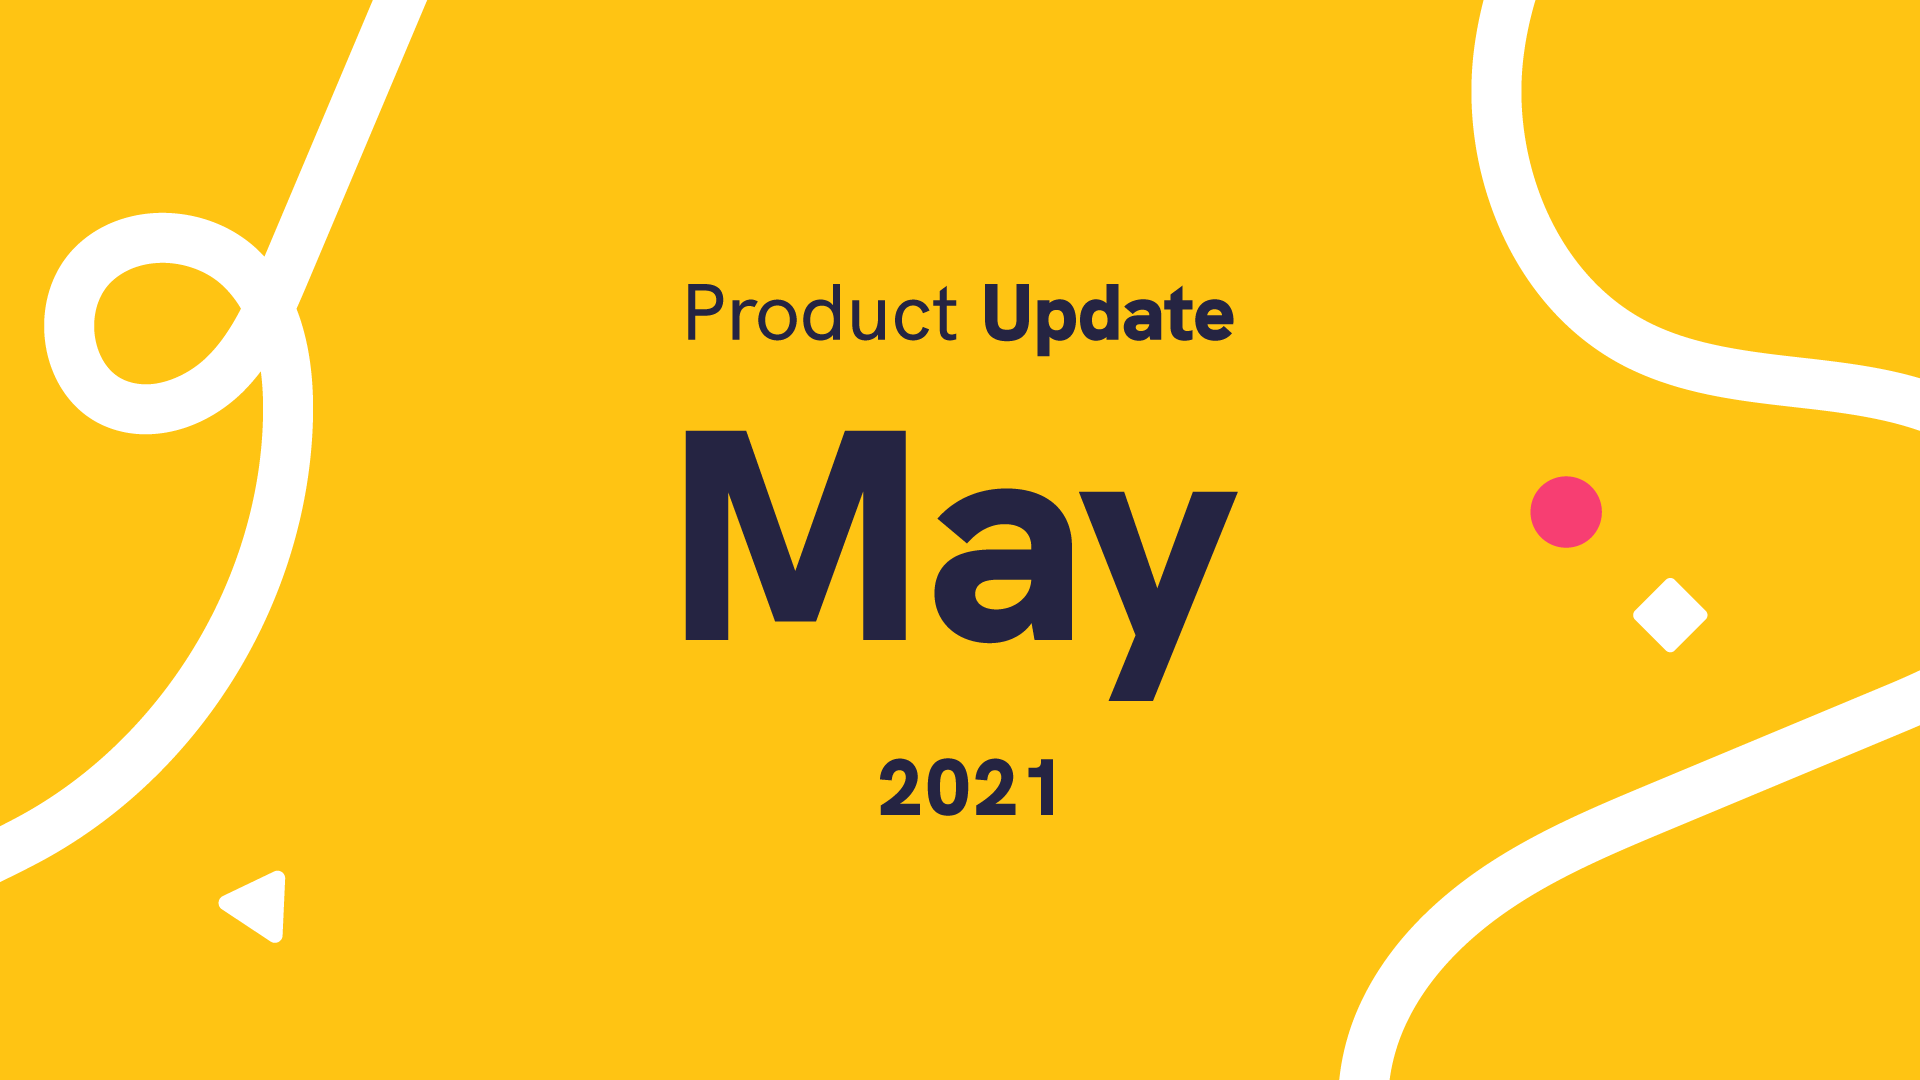 Product Update May